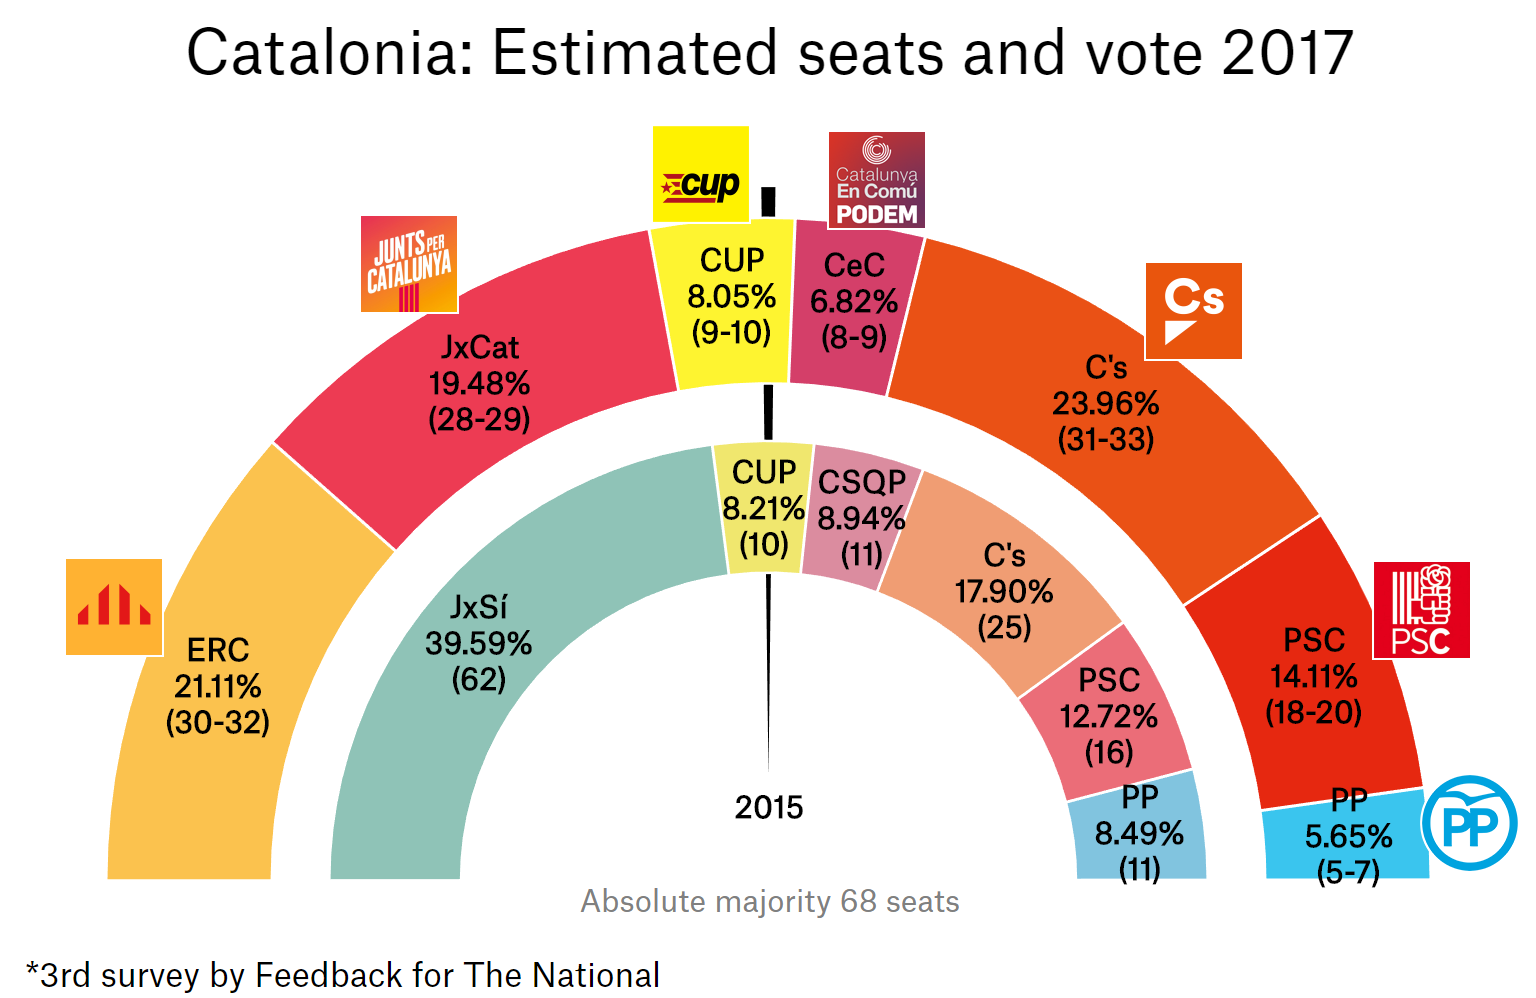 Pro-indy Catalan parties both closing in on unionists and are set to win combined majority in latest world exclusive poll from Catalonia